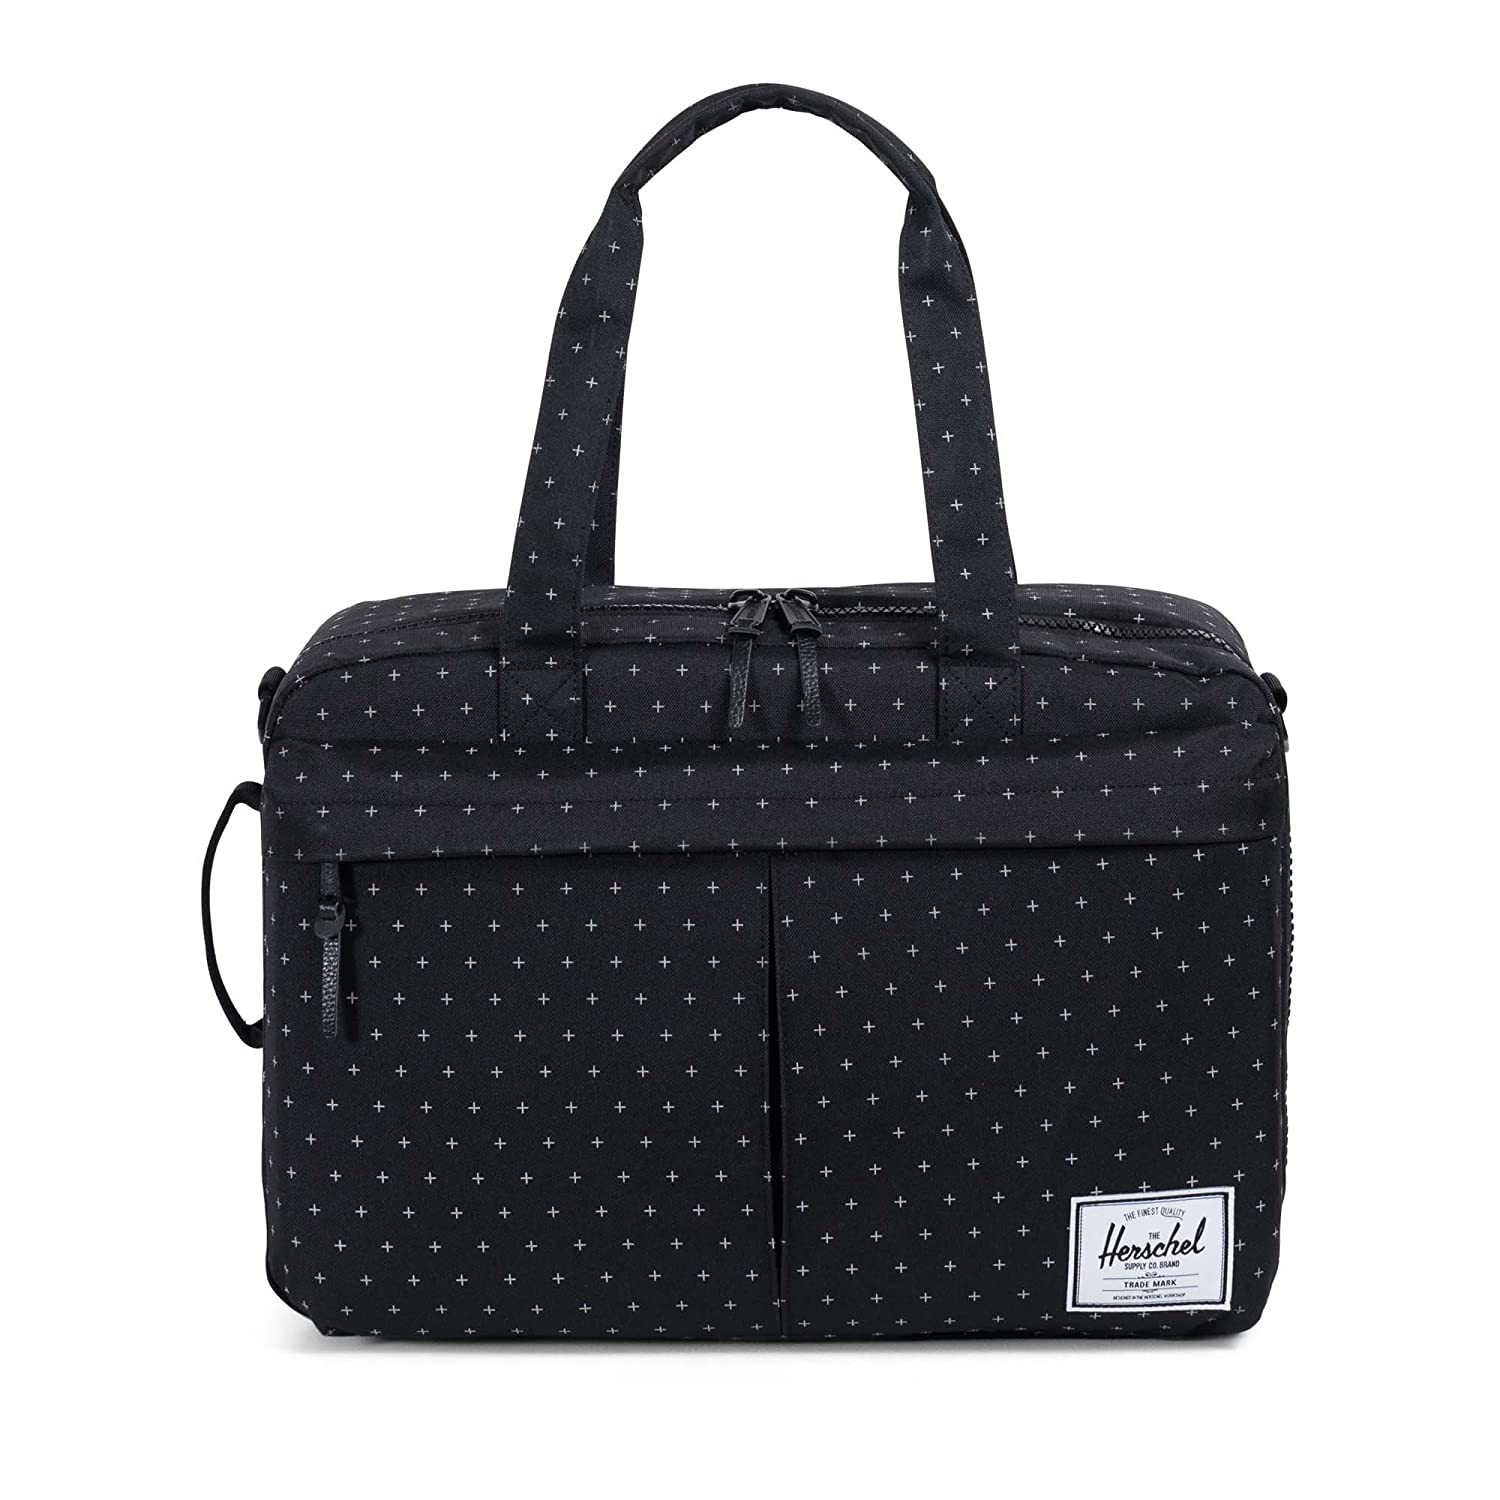 Herschel Travel Bag Bowen Herschel Travel polyester 36.0 I qco5iGmR